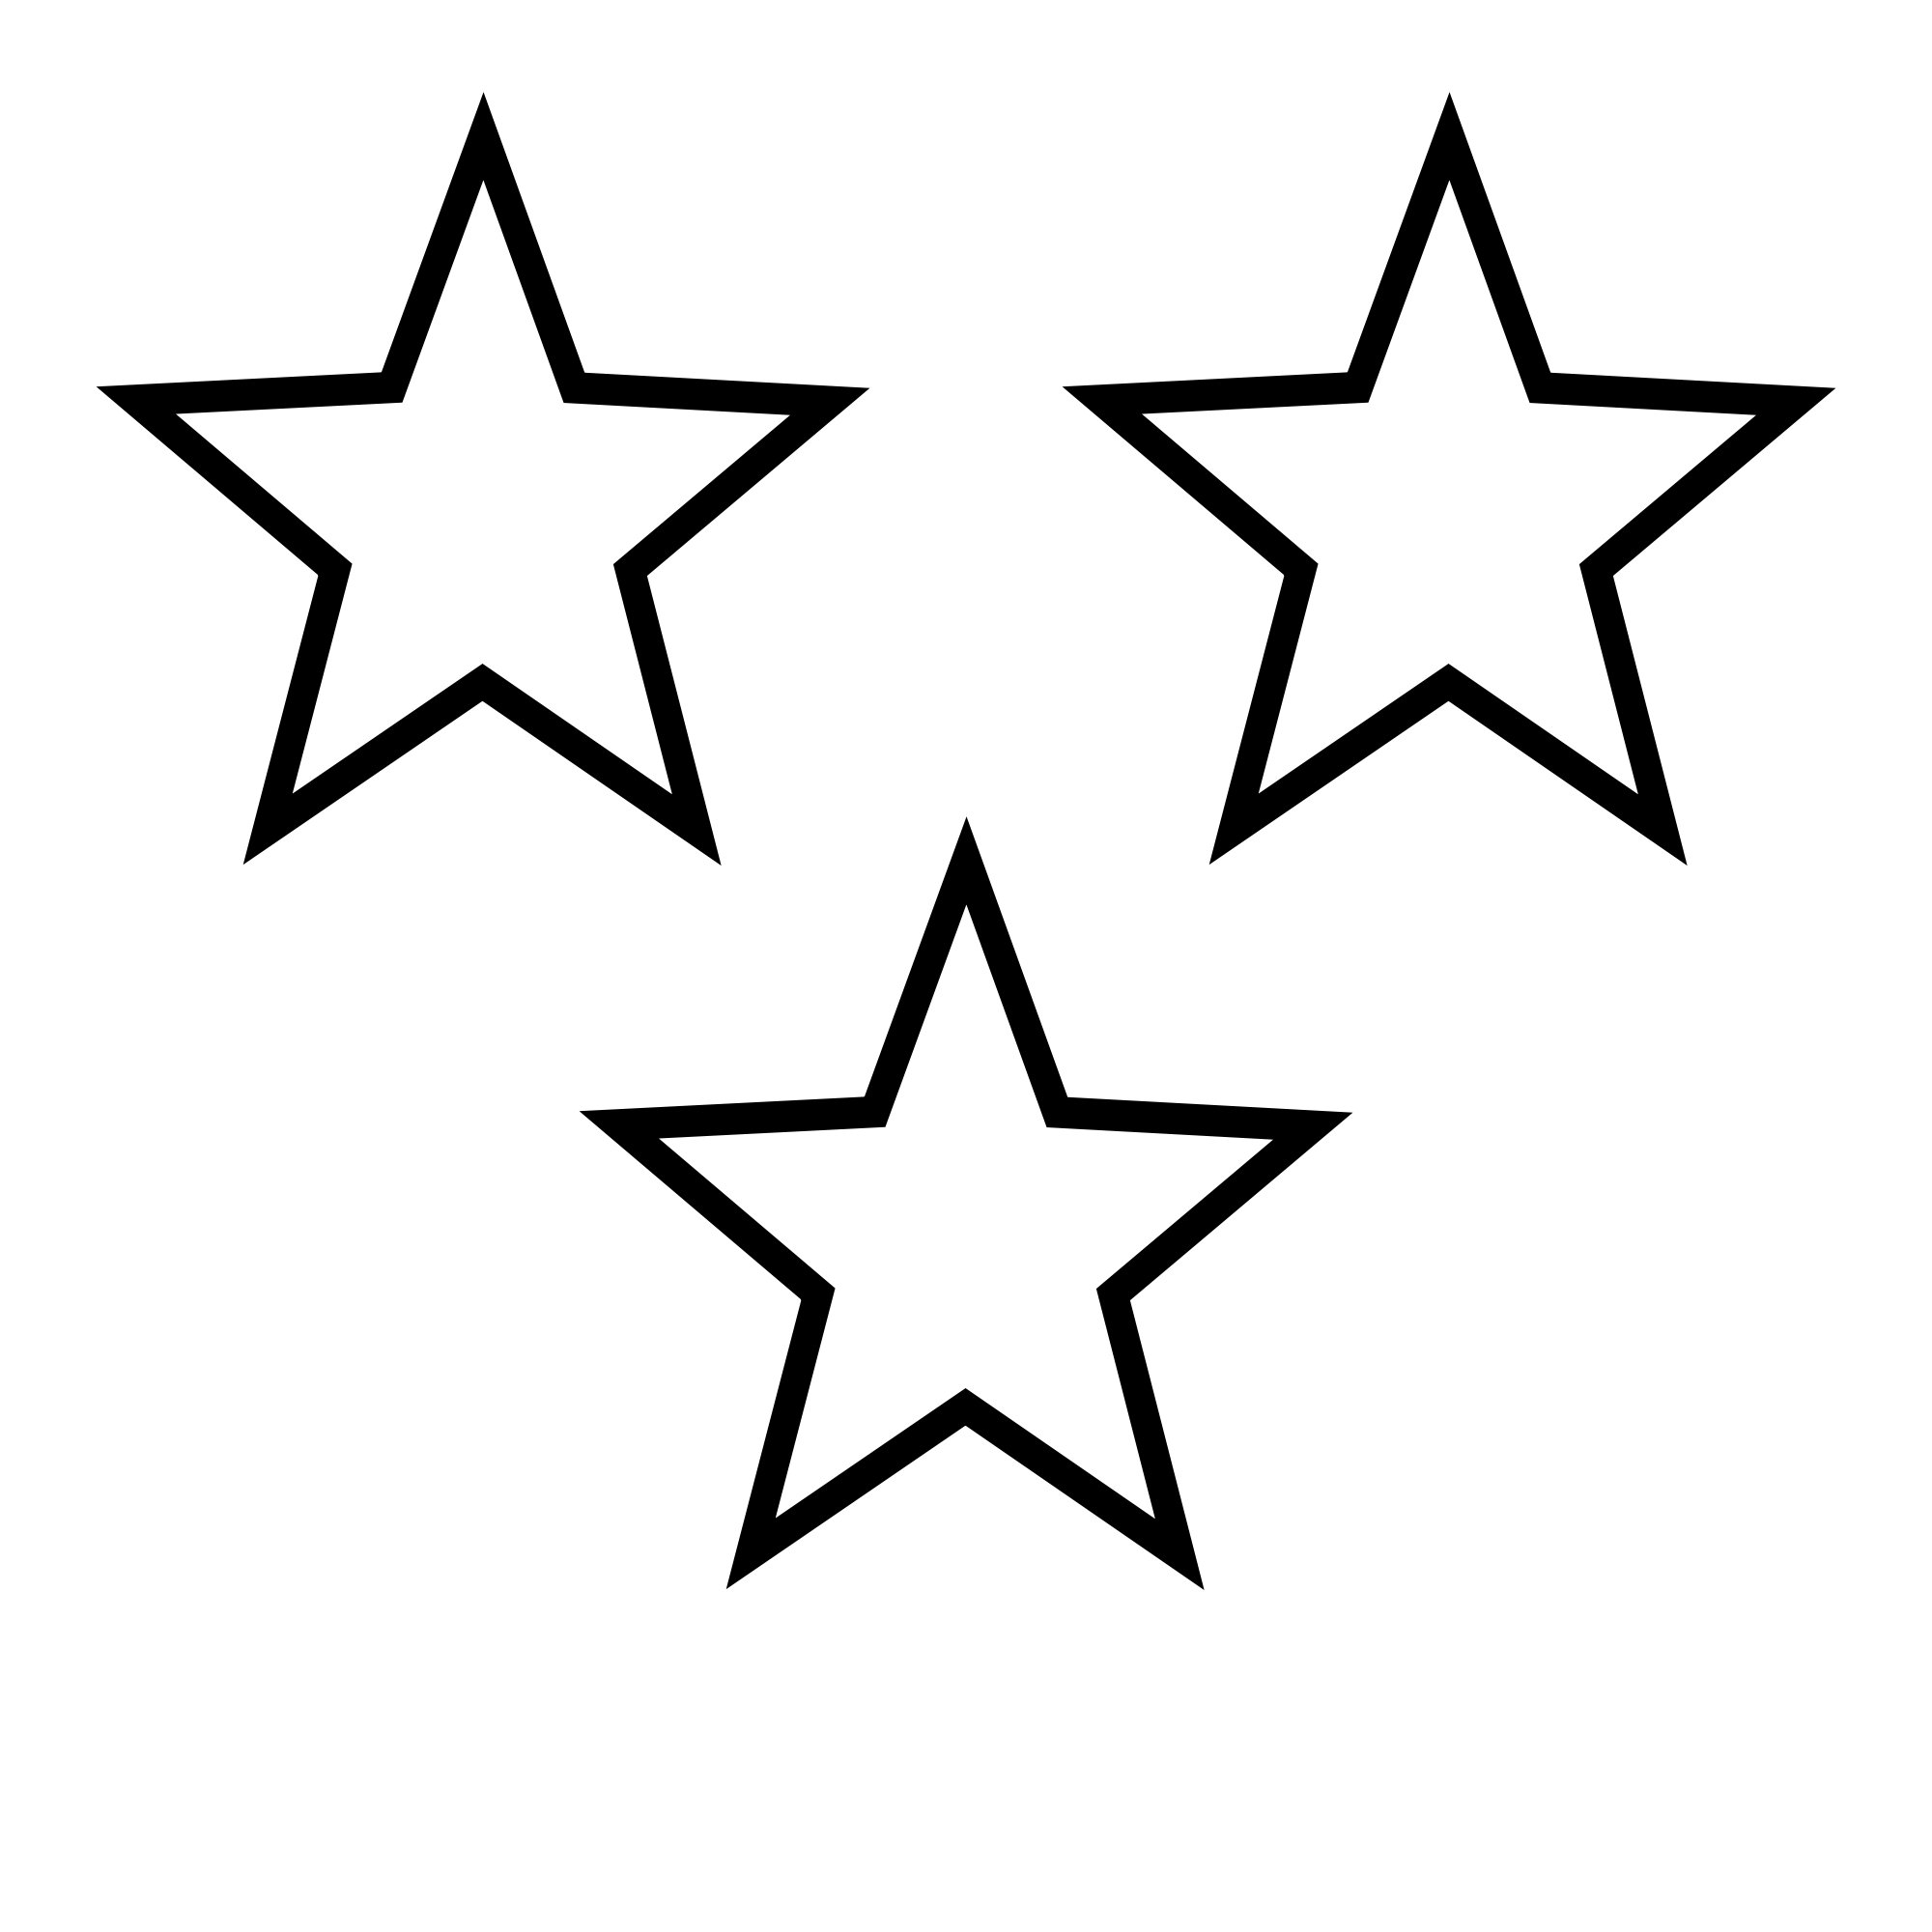 Svg star clip art. File white stars wikimedia